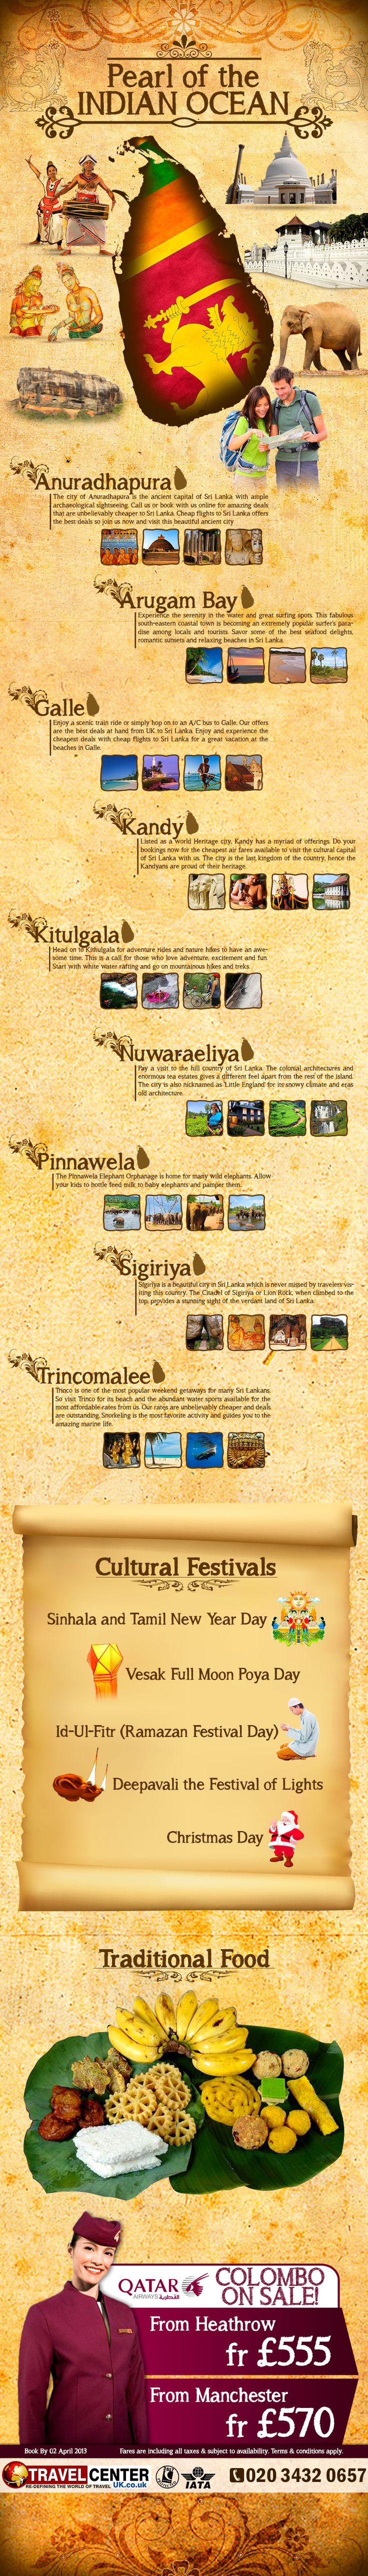 Pearl of the Indian Ocean http://www.travelcenteruk.co.uk/blog/pearl-of-the-indian-ocean-travel-infographics-2/